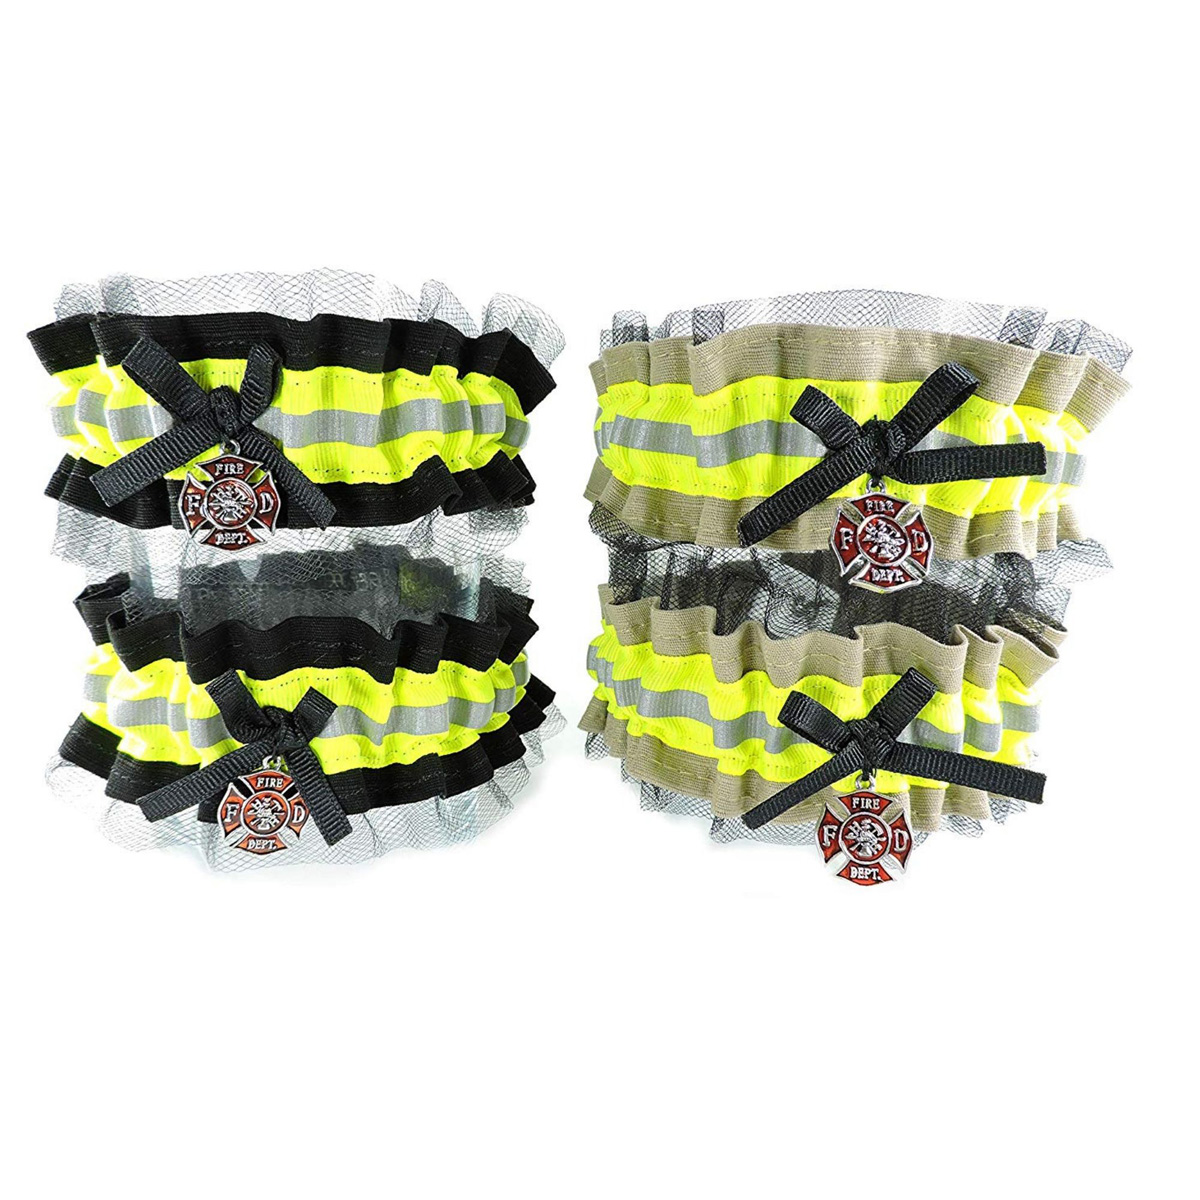 firefighter-wedding-garters-with-lace